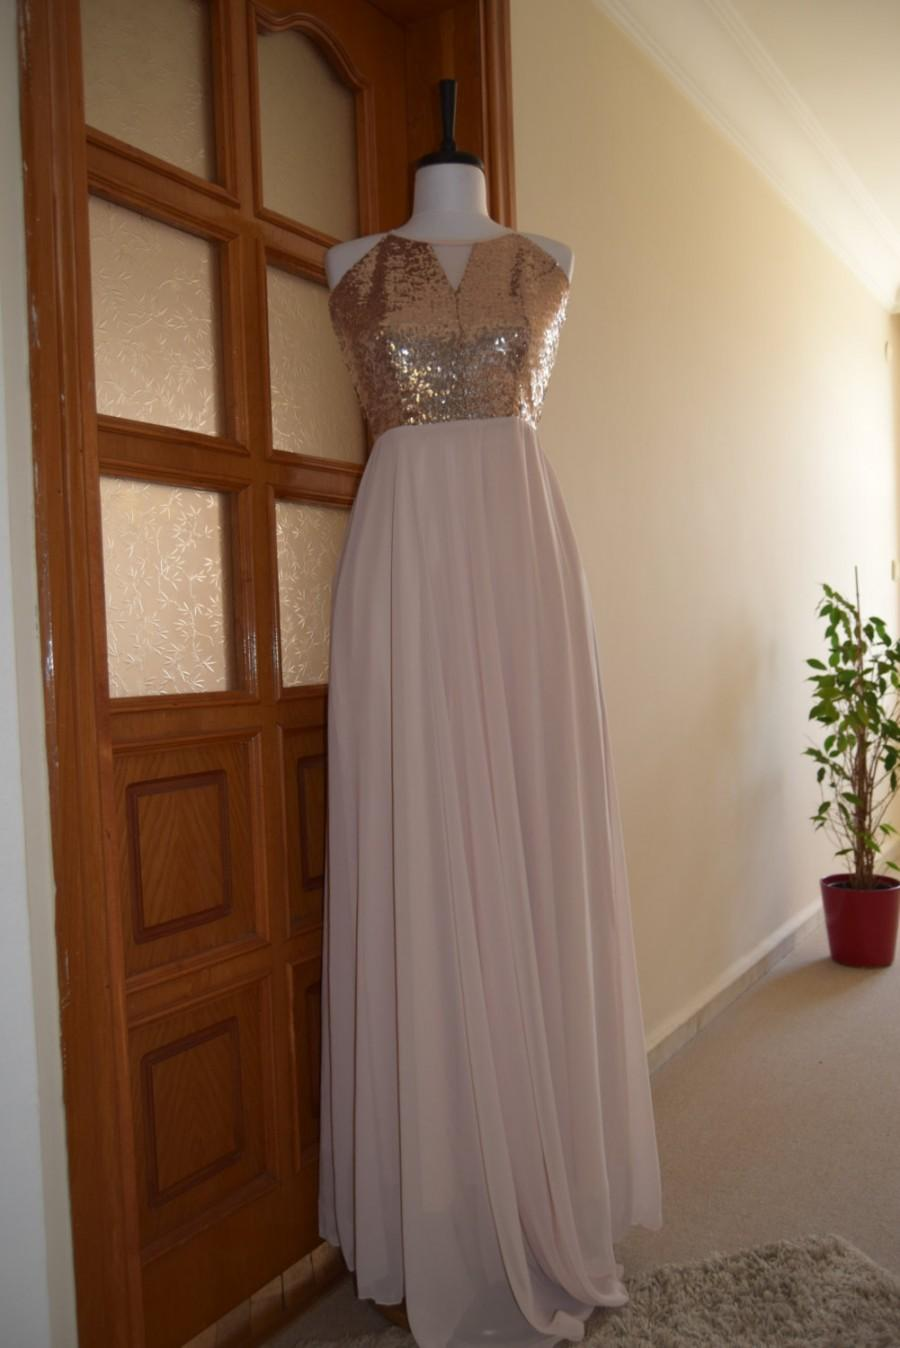 Wedding - Sequin Bridesmaid Dress, Handmade, Champagne, Chiffon, Sleeveless Full Length Sequin Evening Prom Dress, Ballgown Dress, Evening Dress